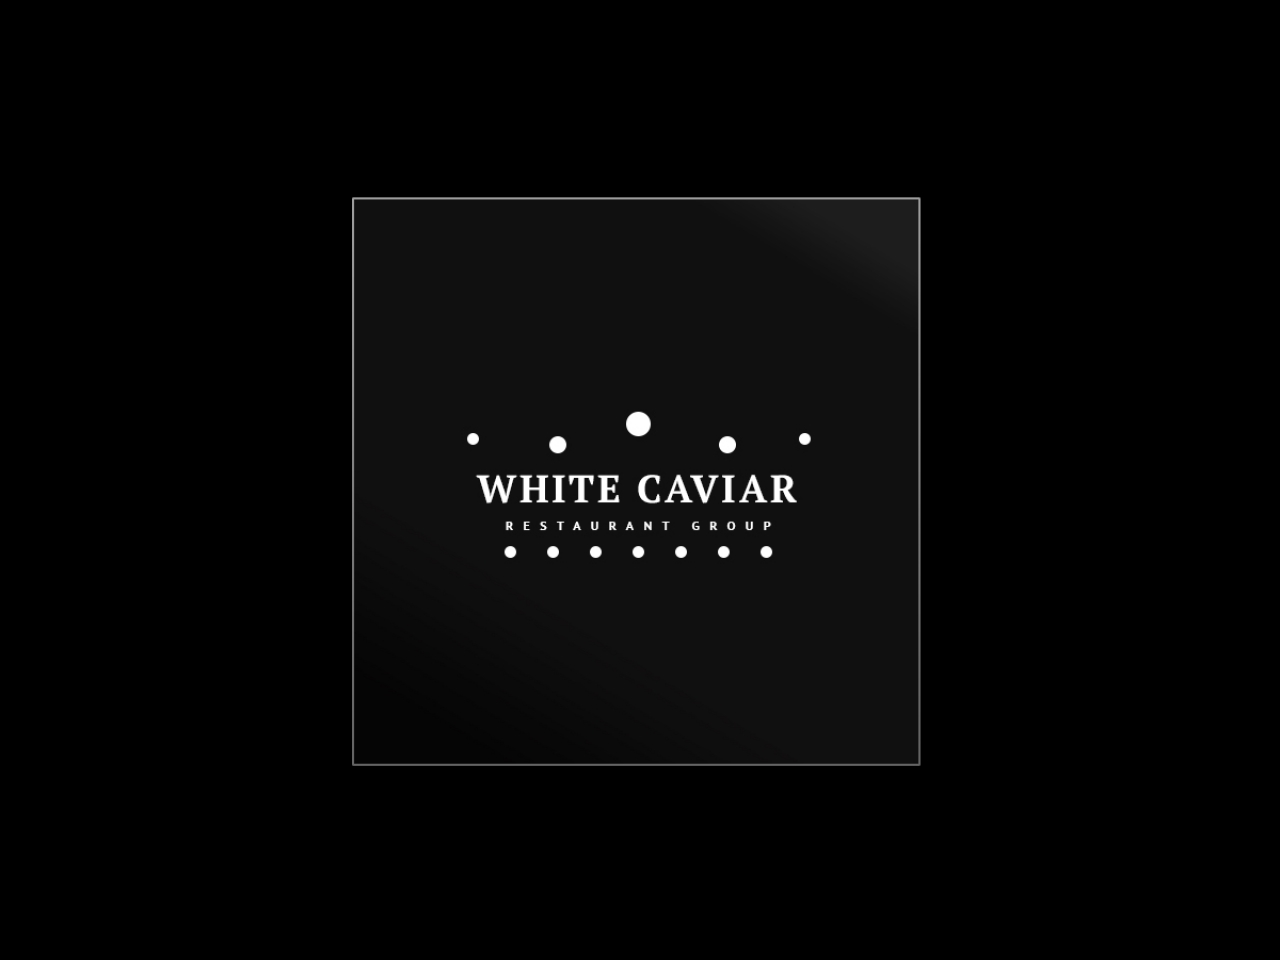 """White Caviar"" restaurant group logo"